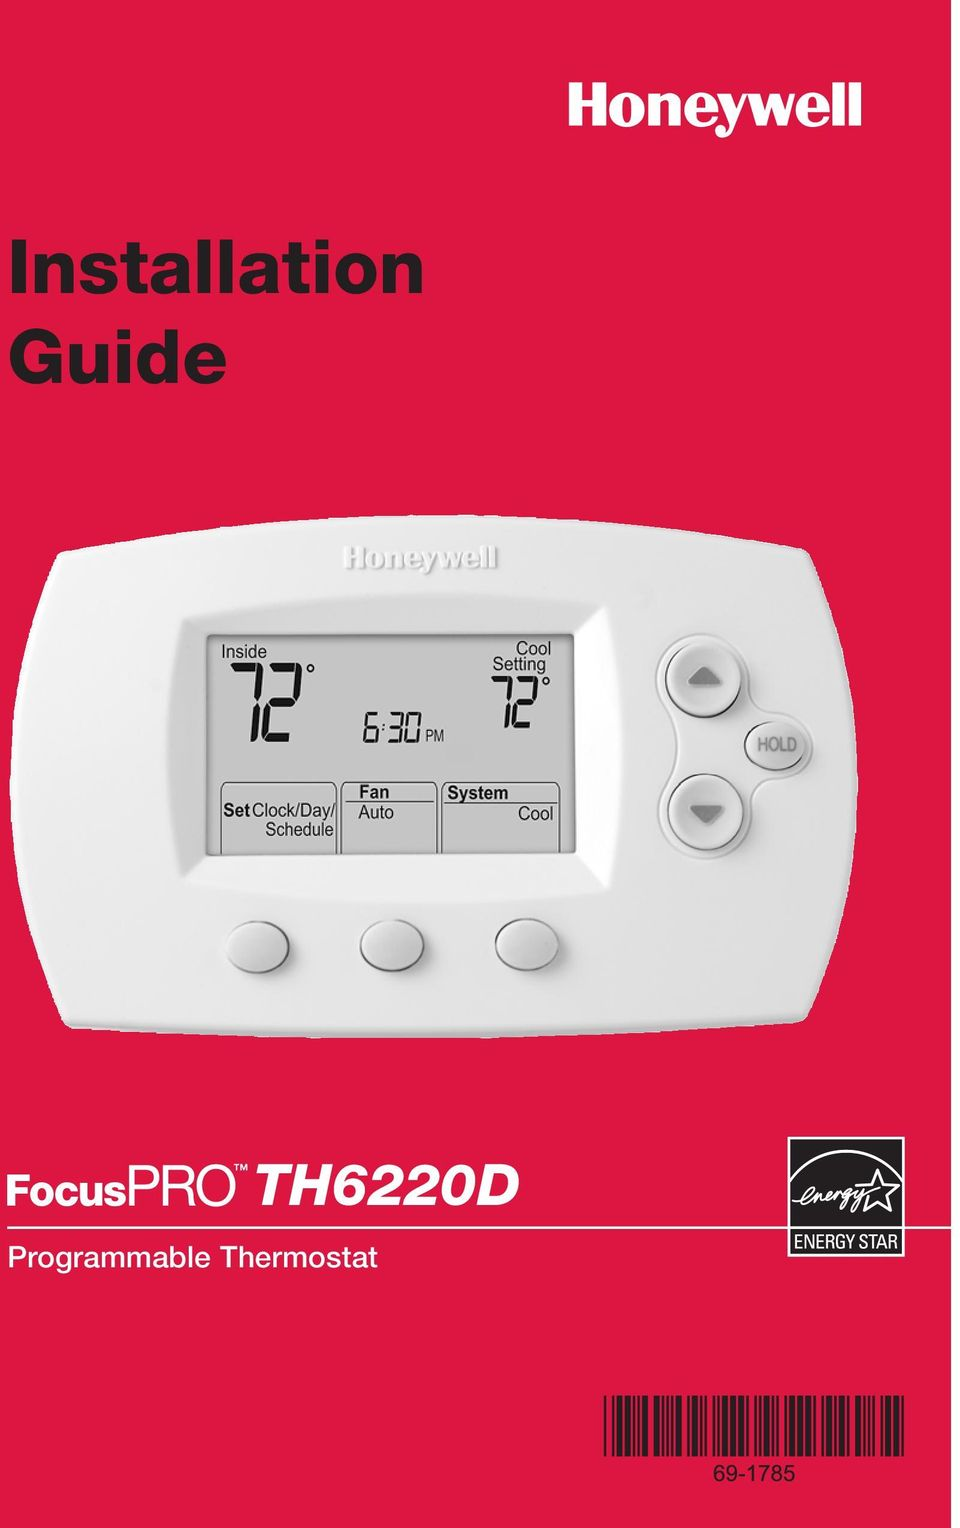 Th6220d Wiring Diagram Sample Honeywell Fan Control Installation Guide Programmable Thermostat Pdf 2 Product Application This Provides